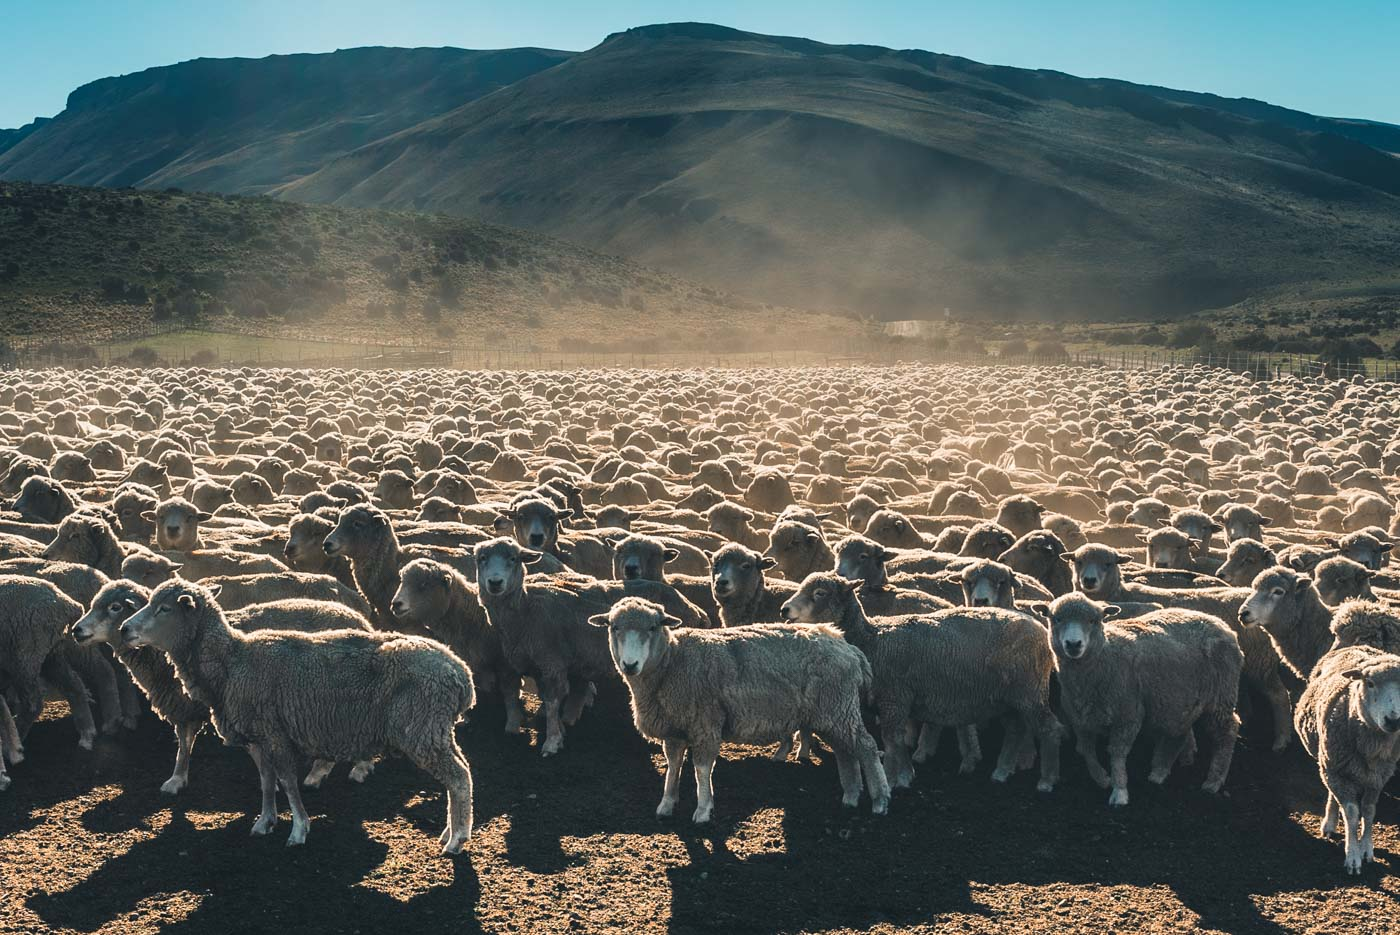 A herd of sheep at a sheering station near Puerto Natales